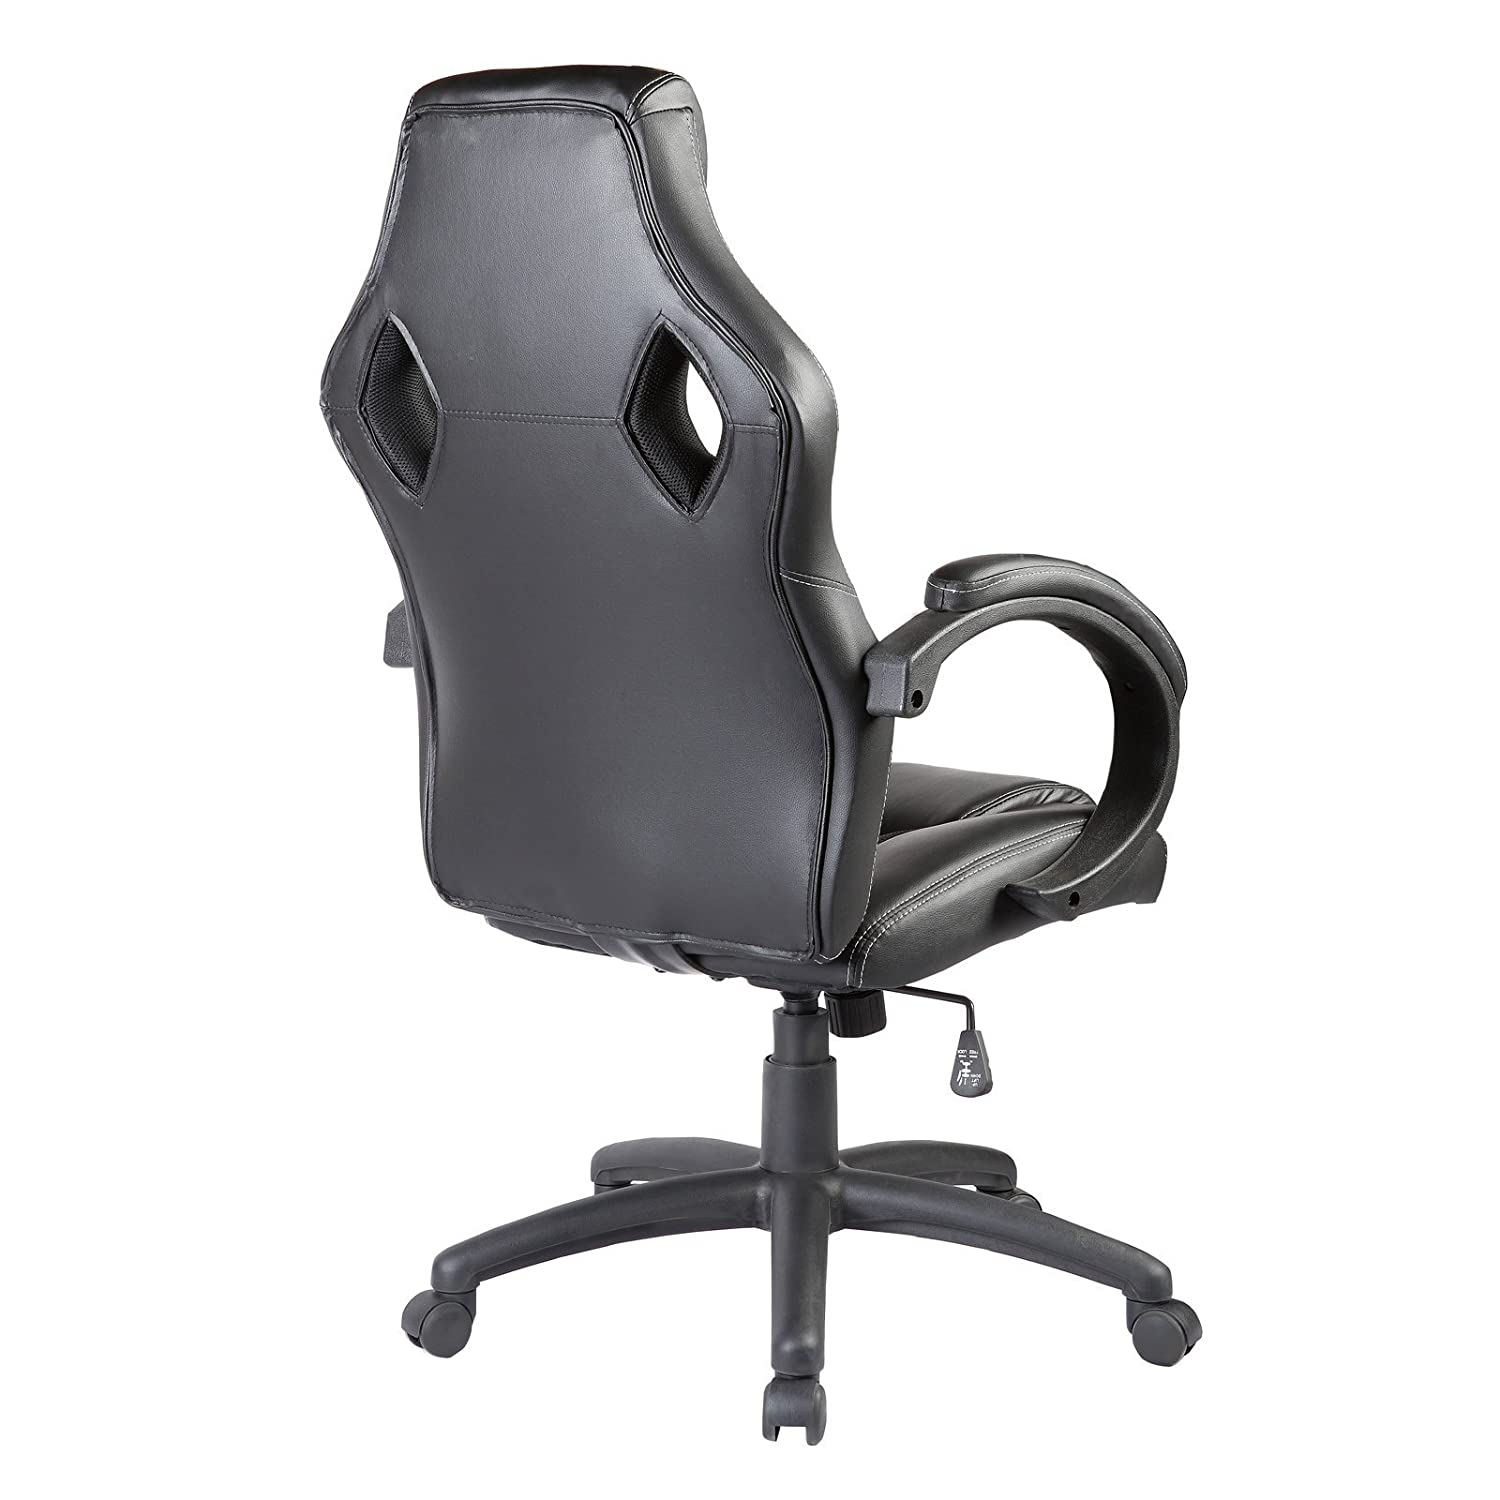 Amazon OFFICE MORE Executive Swivel Leather fice Chair